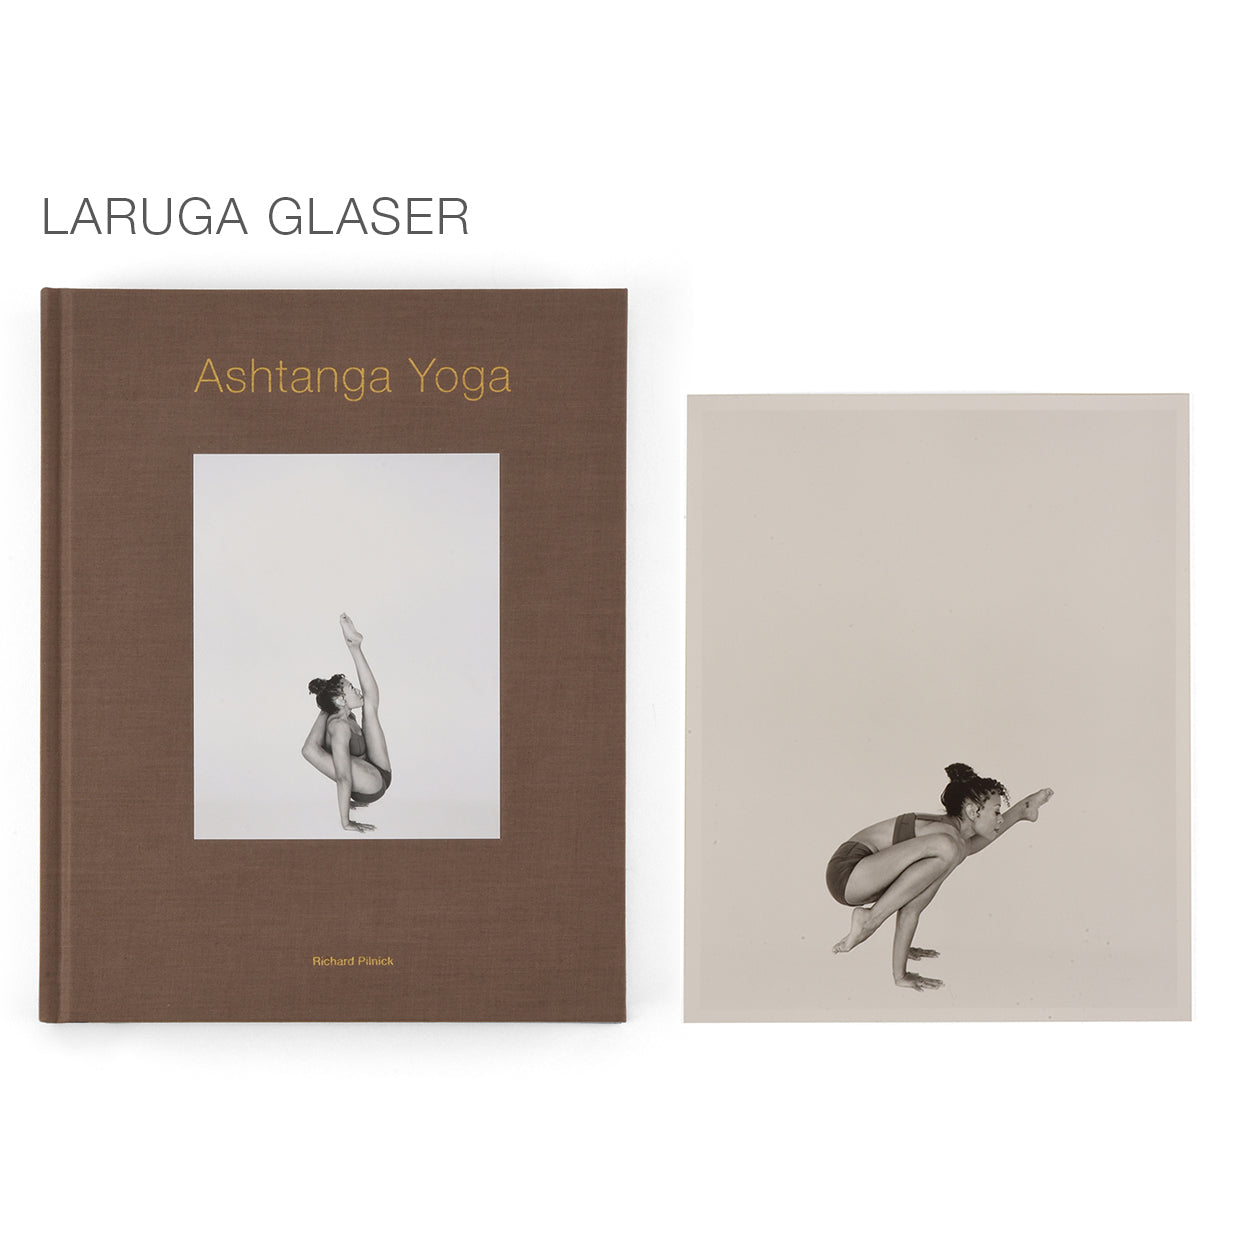 Laruga Glaser Limited Edition Ashtanga Yoga Book